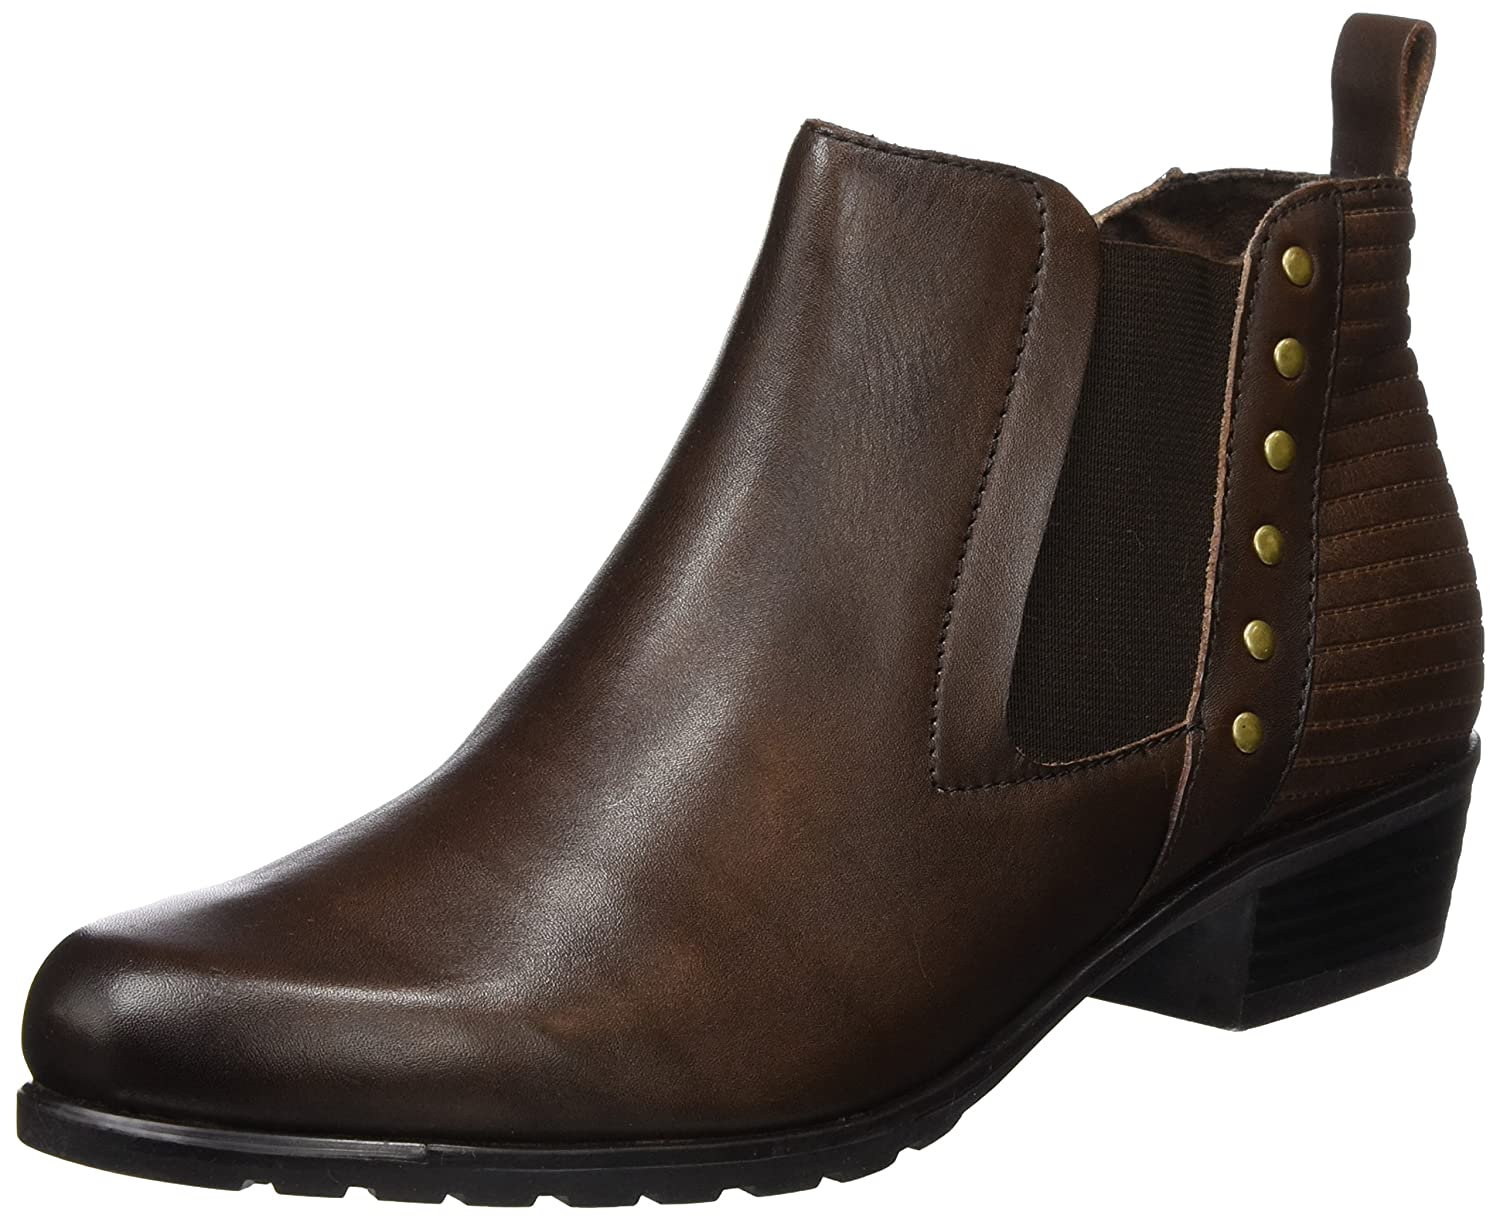 Footwear Womens 25322 Ankle Boots, Red Caprice